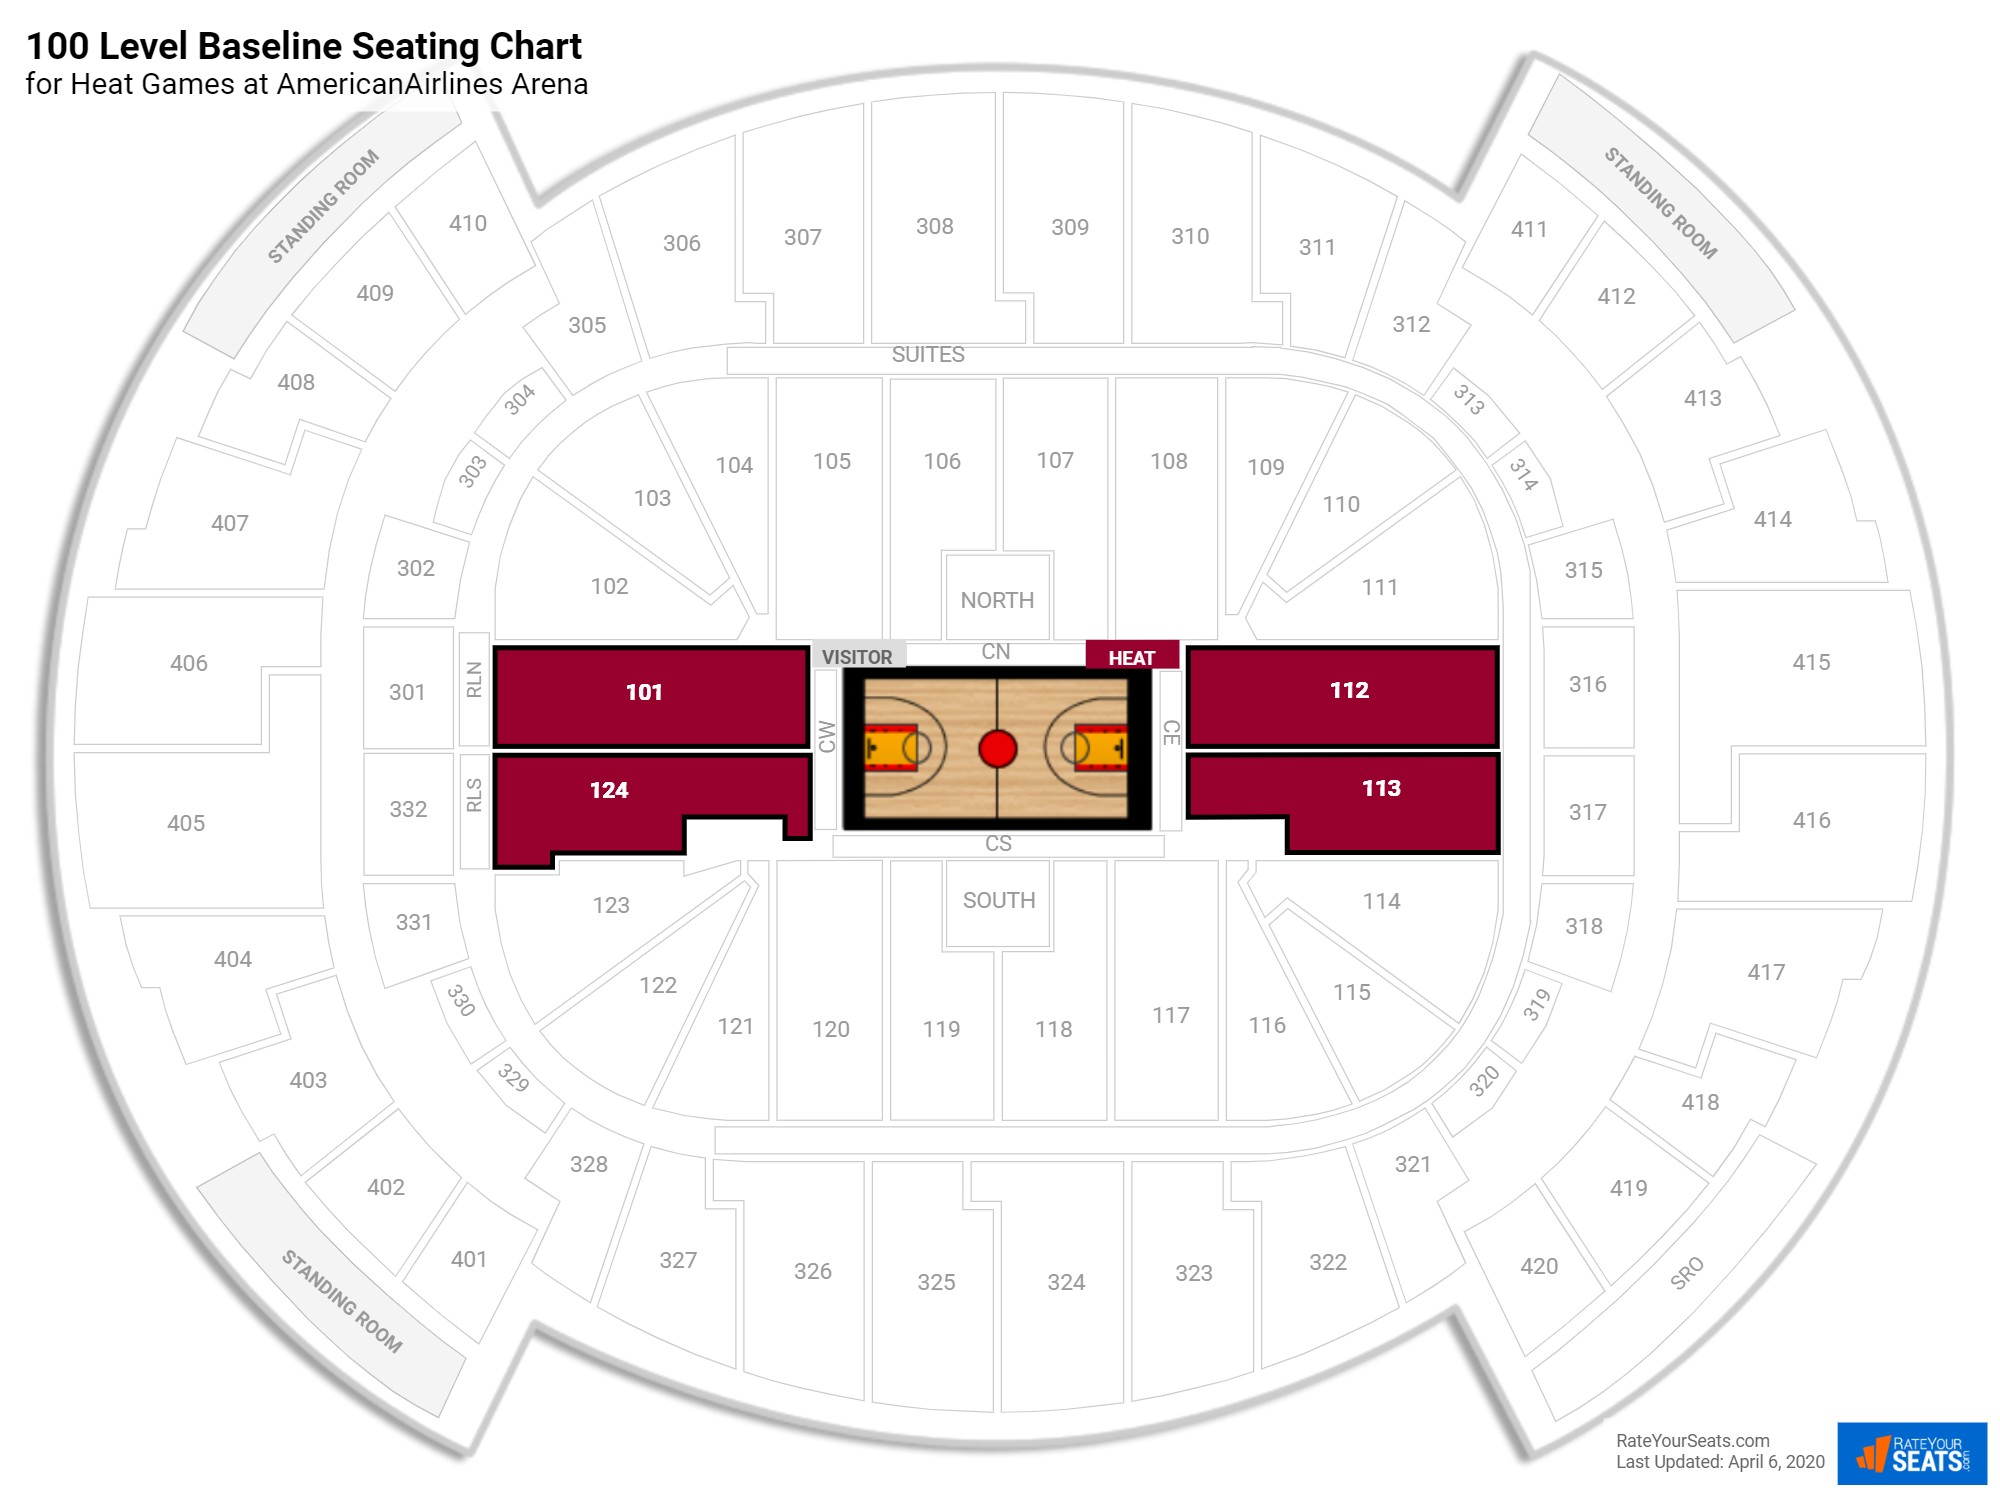 AmericanAirlines Arena 100 Level Baseline seating chart